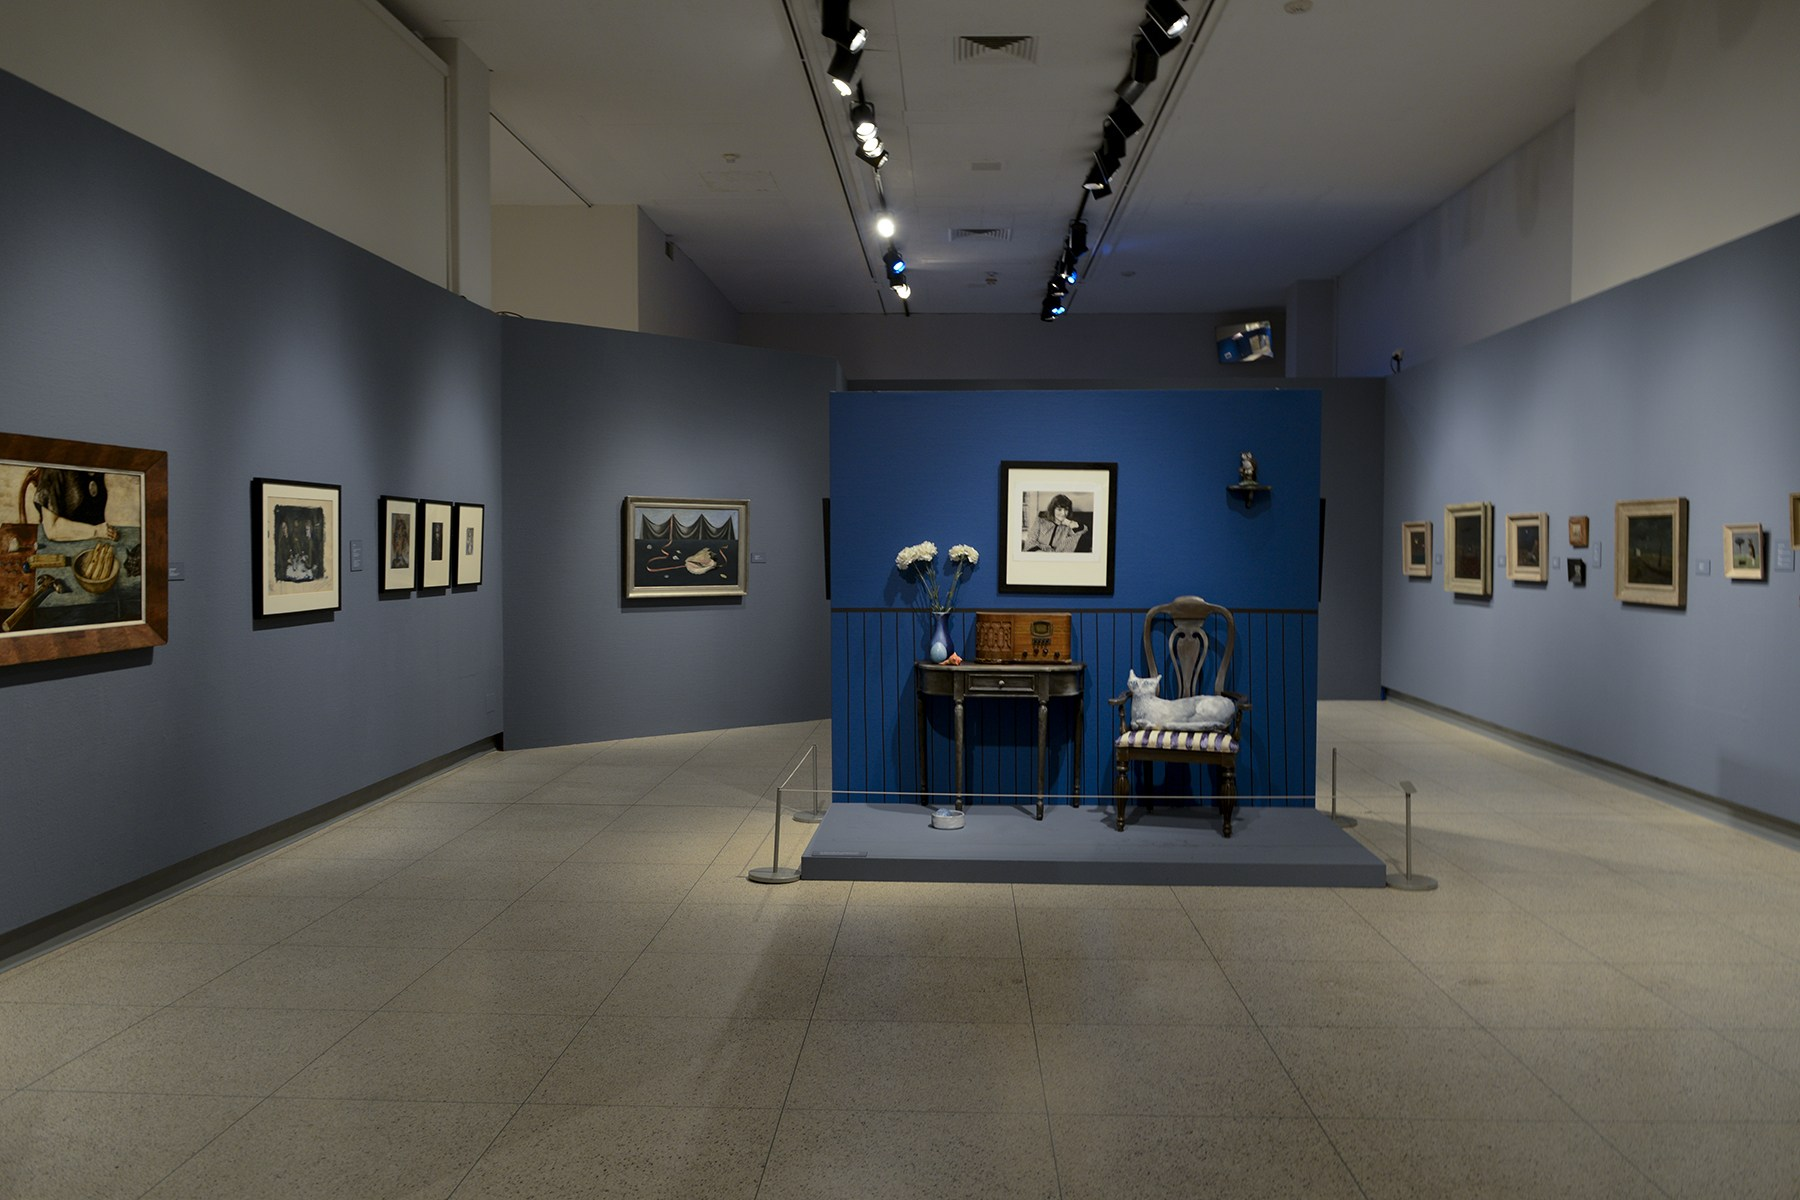 Looking through the exhibition there is a bright blue wall with a chair, cat, image of Abercrombie and a radio playing the music of Abercrombie's close friends Dizzy Gillespie, Sonny Rollins, and others. On the surrounding walls are many more works by Abercrombie. Image courtesy of the Illinois State Museum.